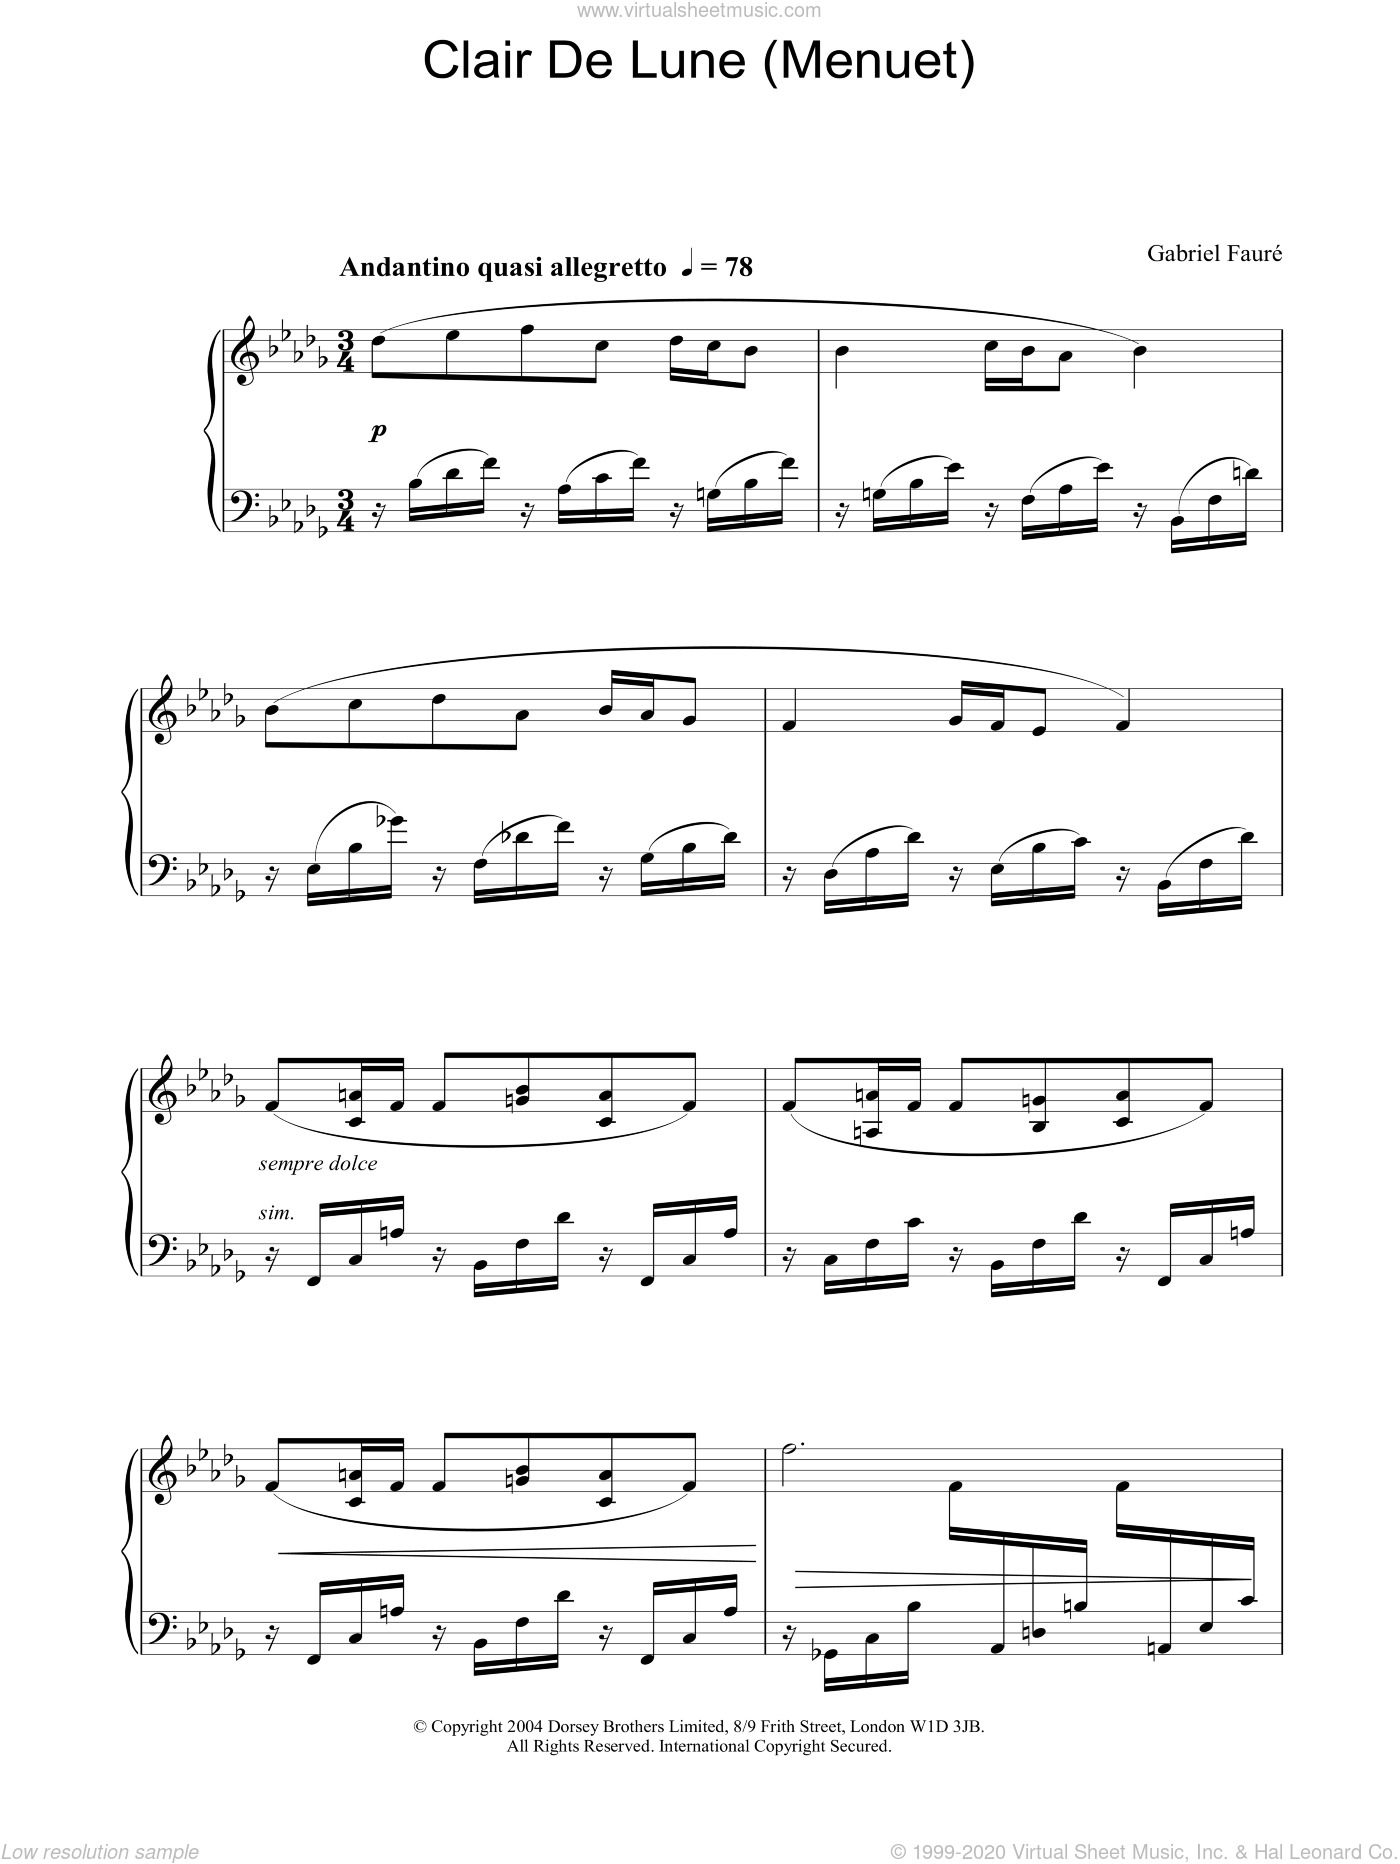 Clair de Lune (Menuet) sheet music for piano solo by Gabriel Faure